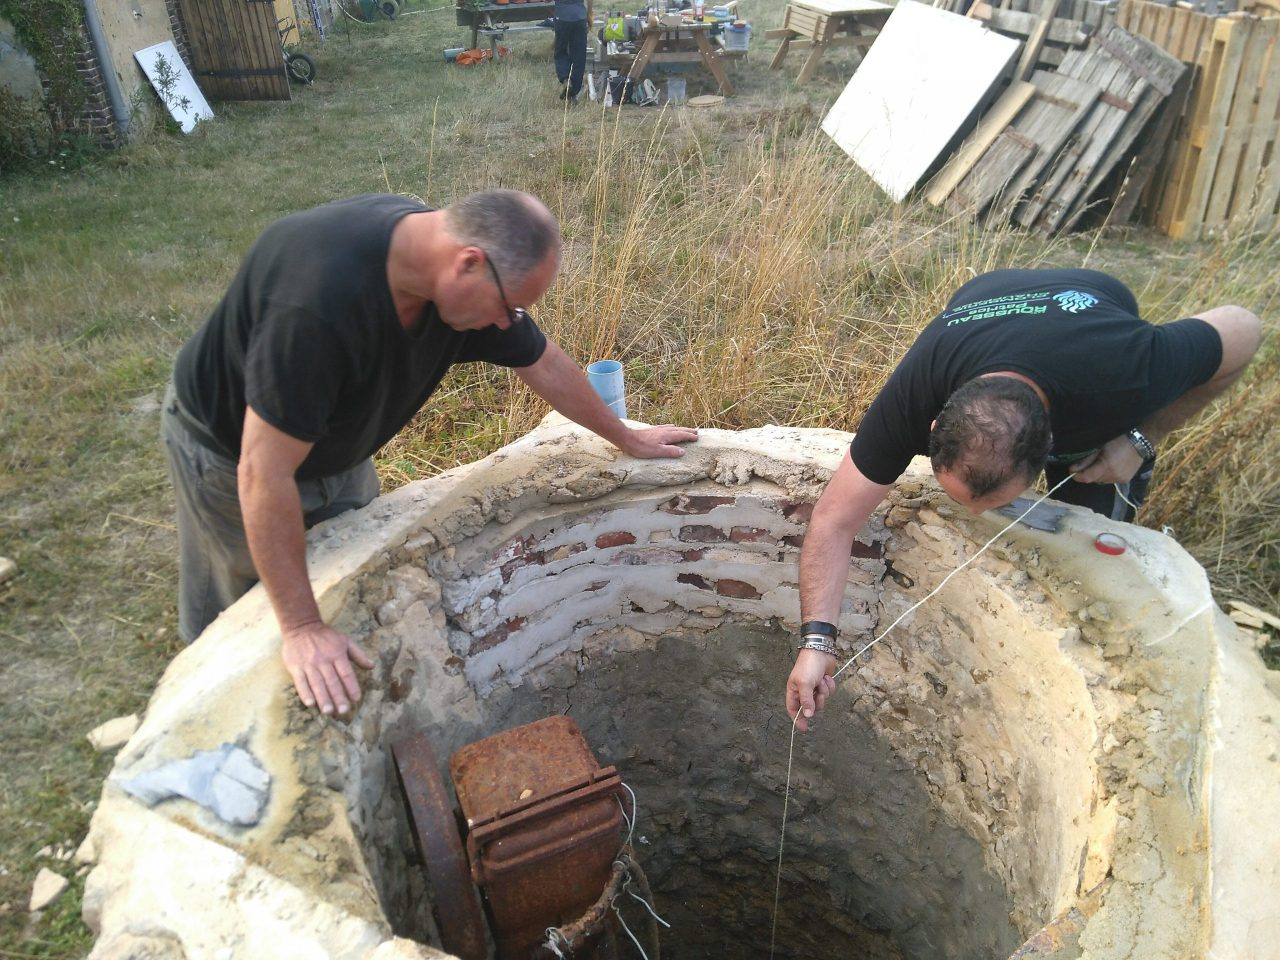 Testing the depth of the well